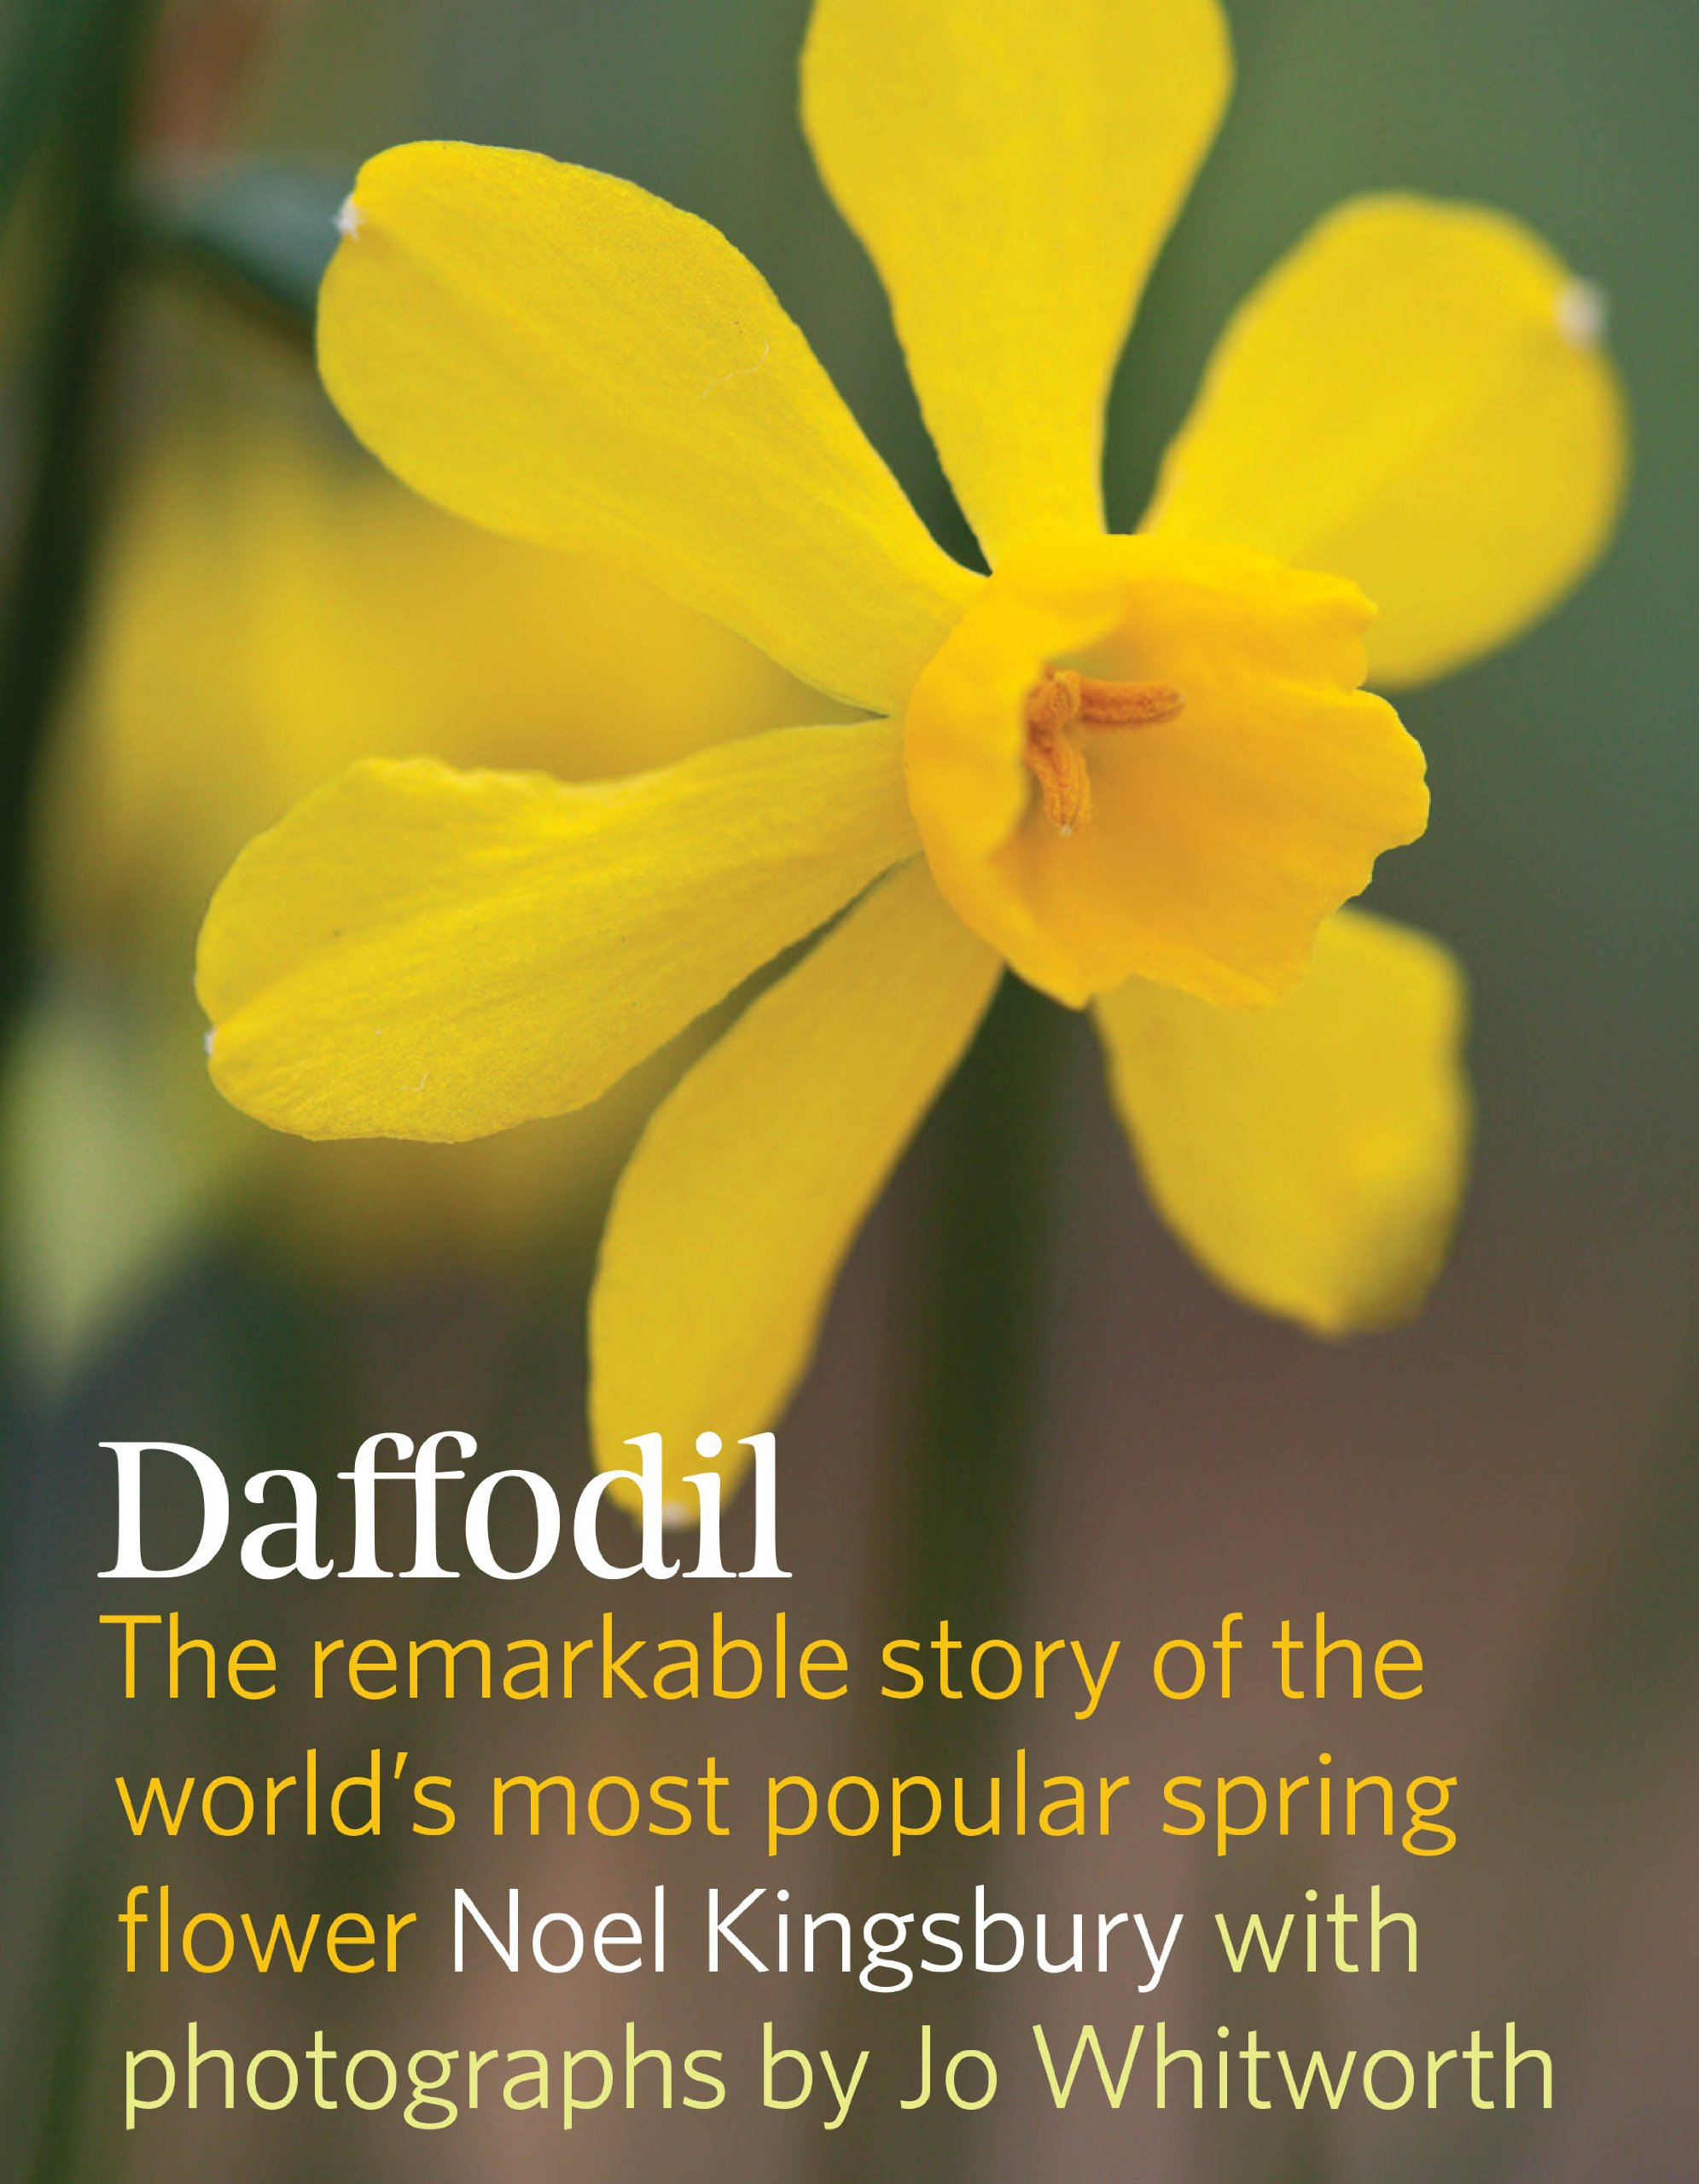 Daffodil the remarkable story of the worlds most popular spring daffodil the remarkable story of the worlds most popular spring flower noel kingsbury jo whitworth 9781604693188 amazon books mightylinksfo